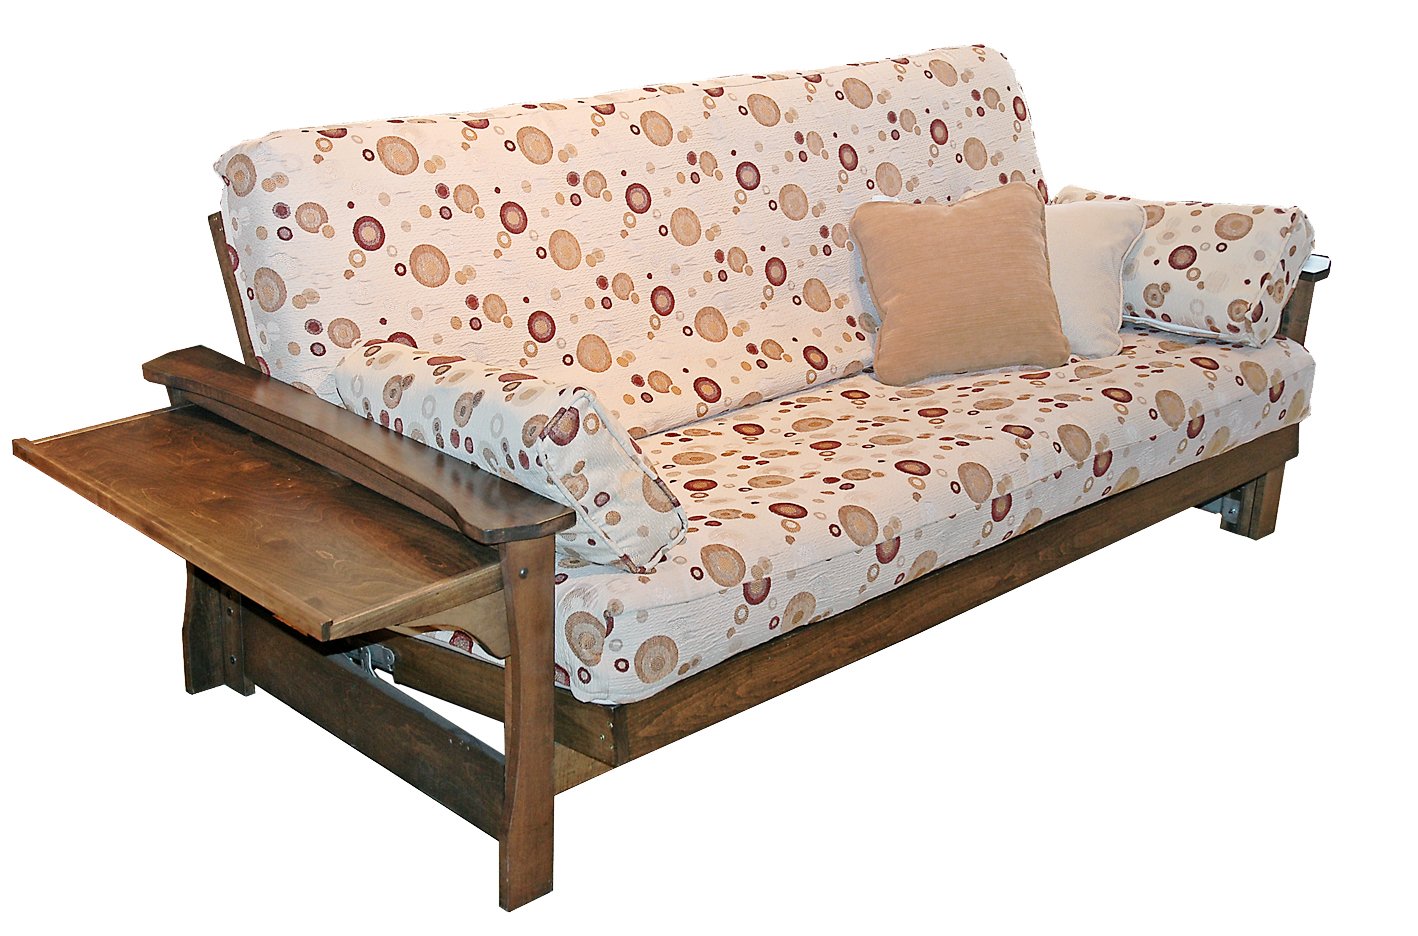 Sydney Futon Frame Du0027or U0026 Natural Mattressesfuton Mattresses